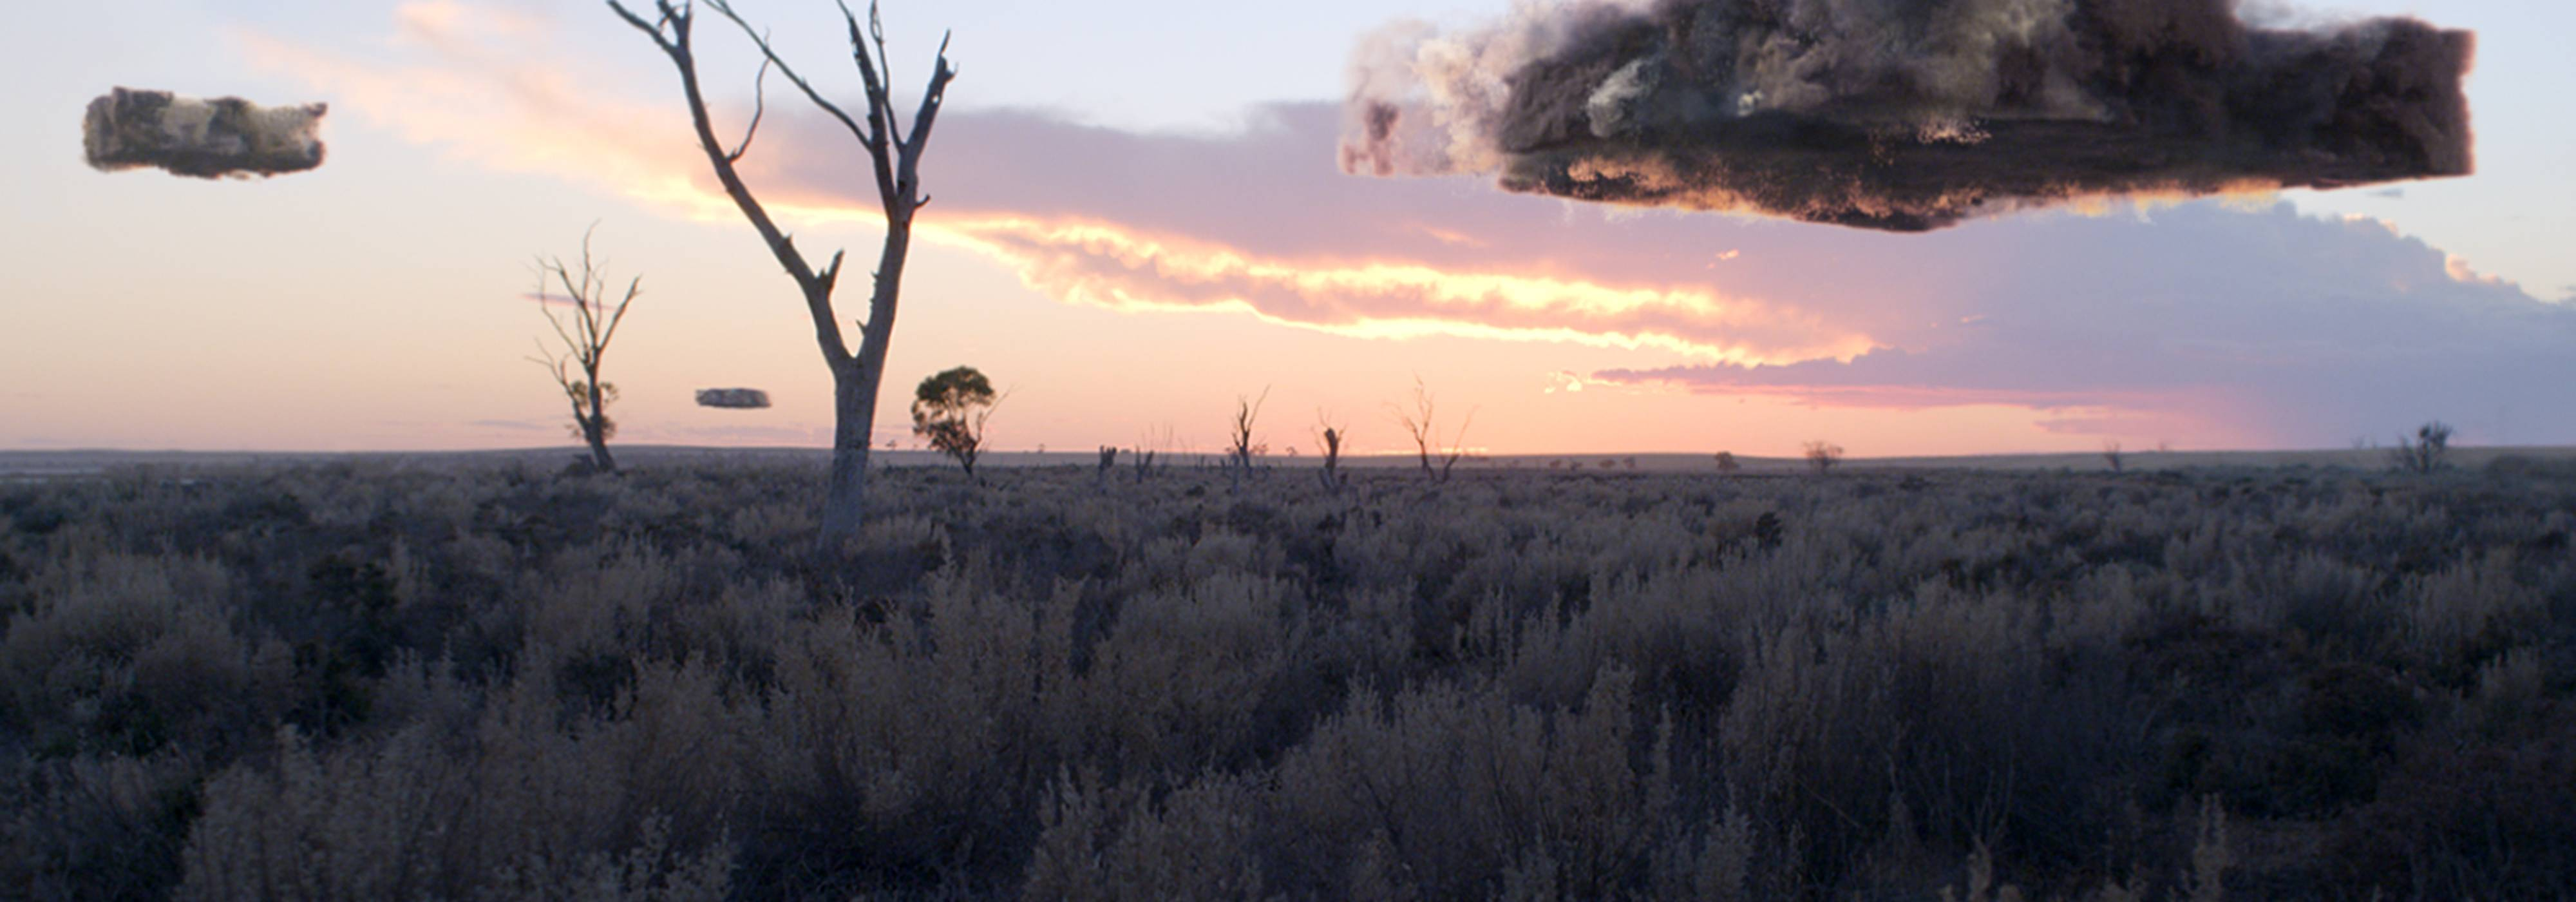 Square-shaped chunks of air pollution above a grassy outback landscape at sunrise.